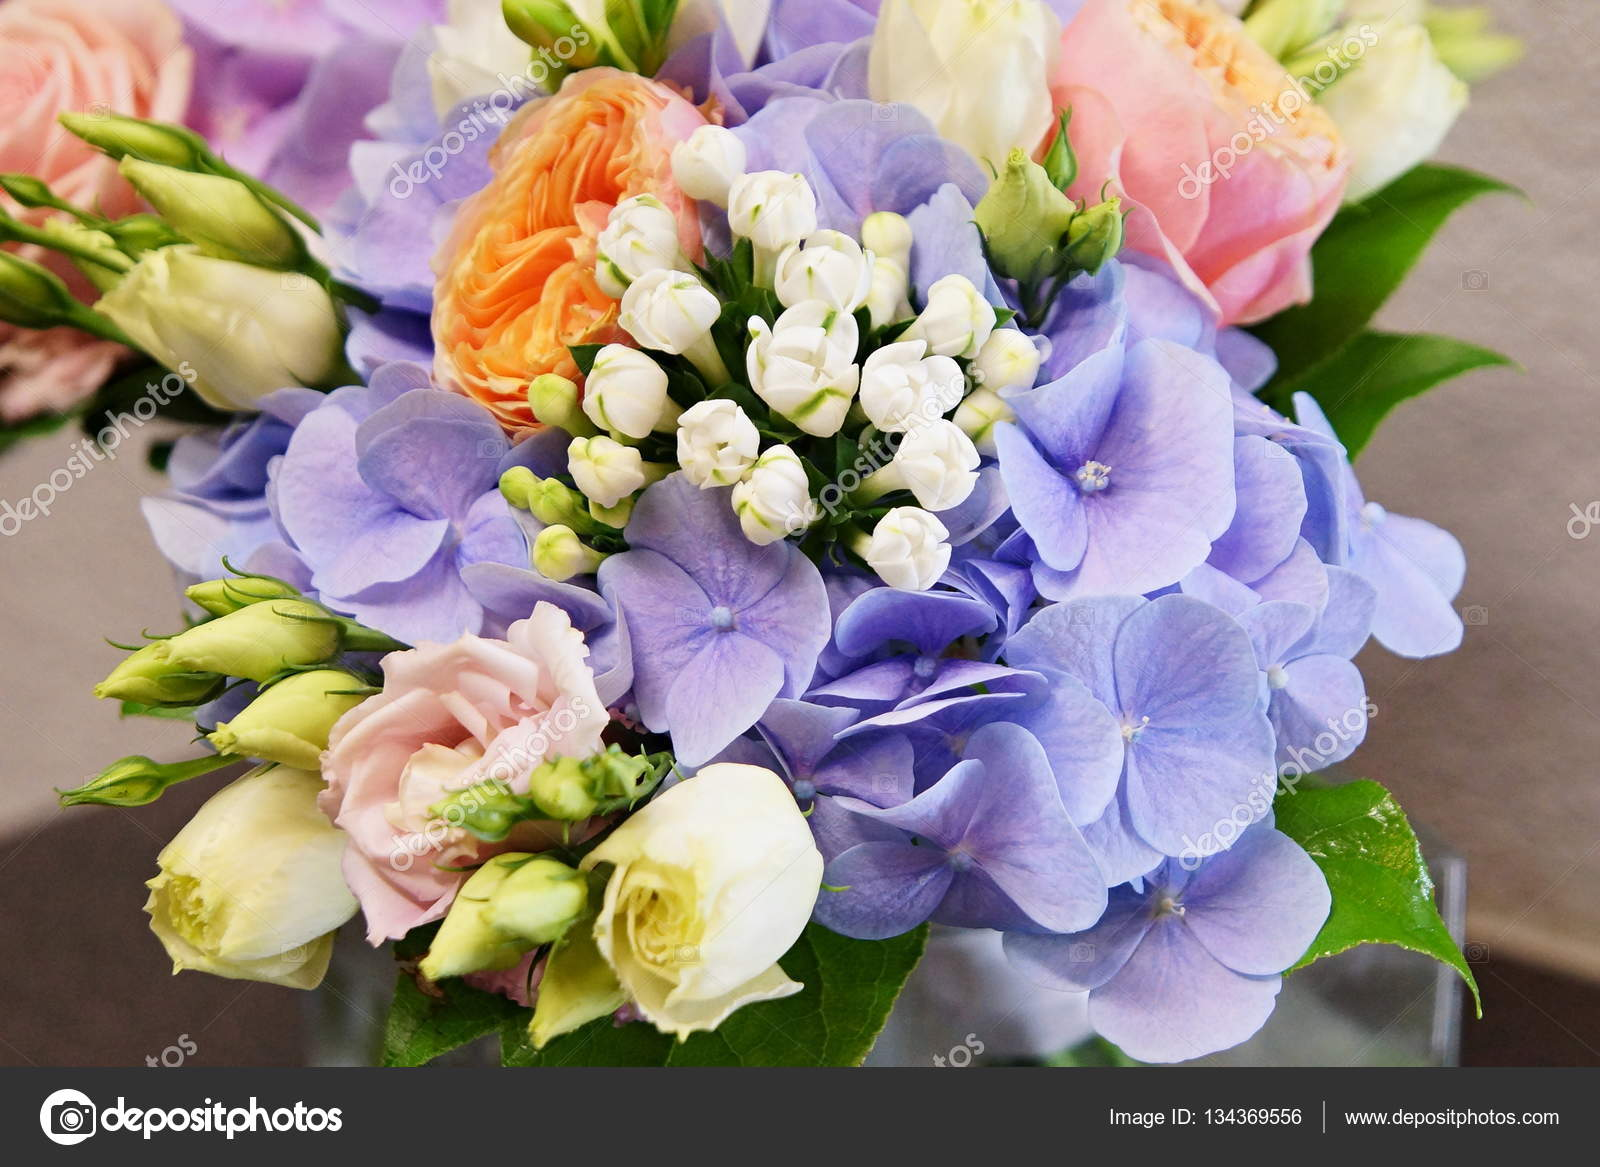 Mazzo Di Fiori Ortensie.Beautiful Bouquet Of Flowers Stock Photo C Petrdlouhy 134369556